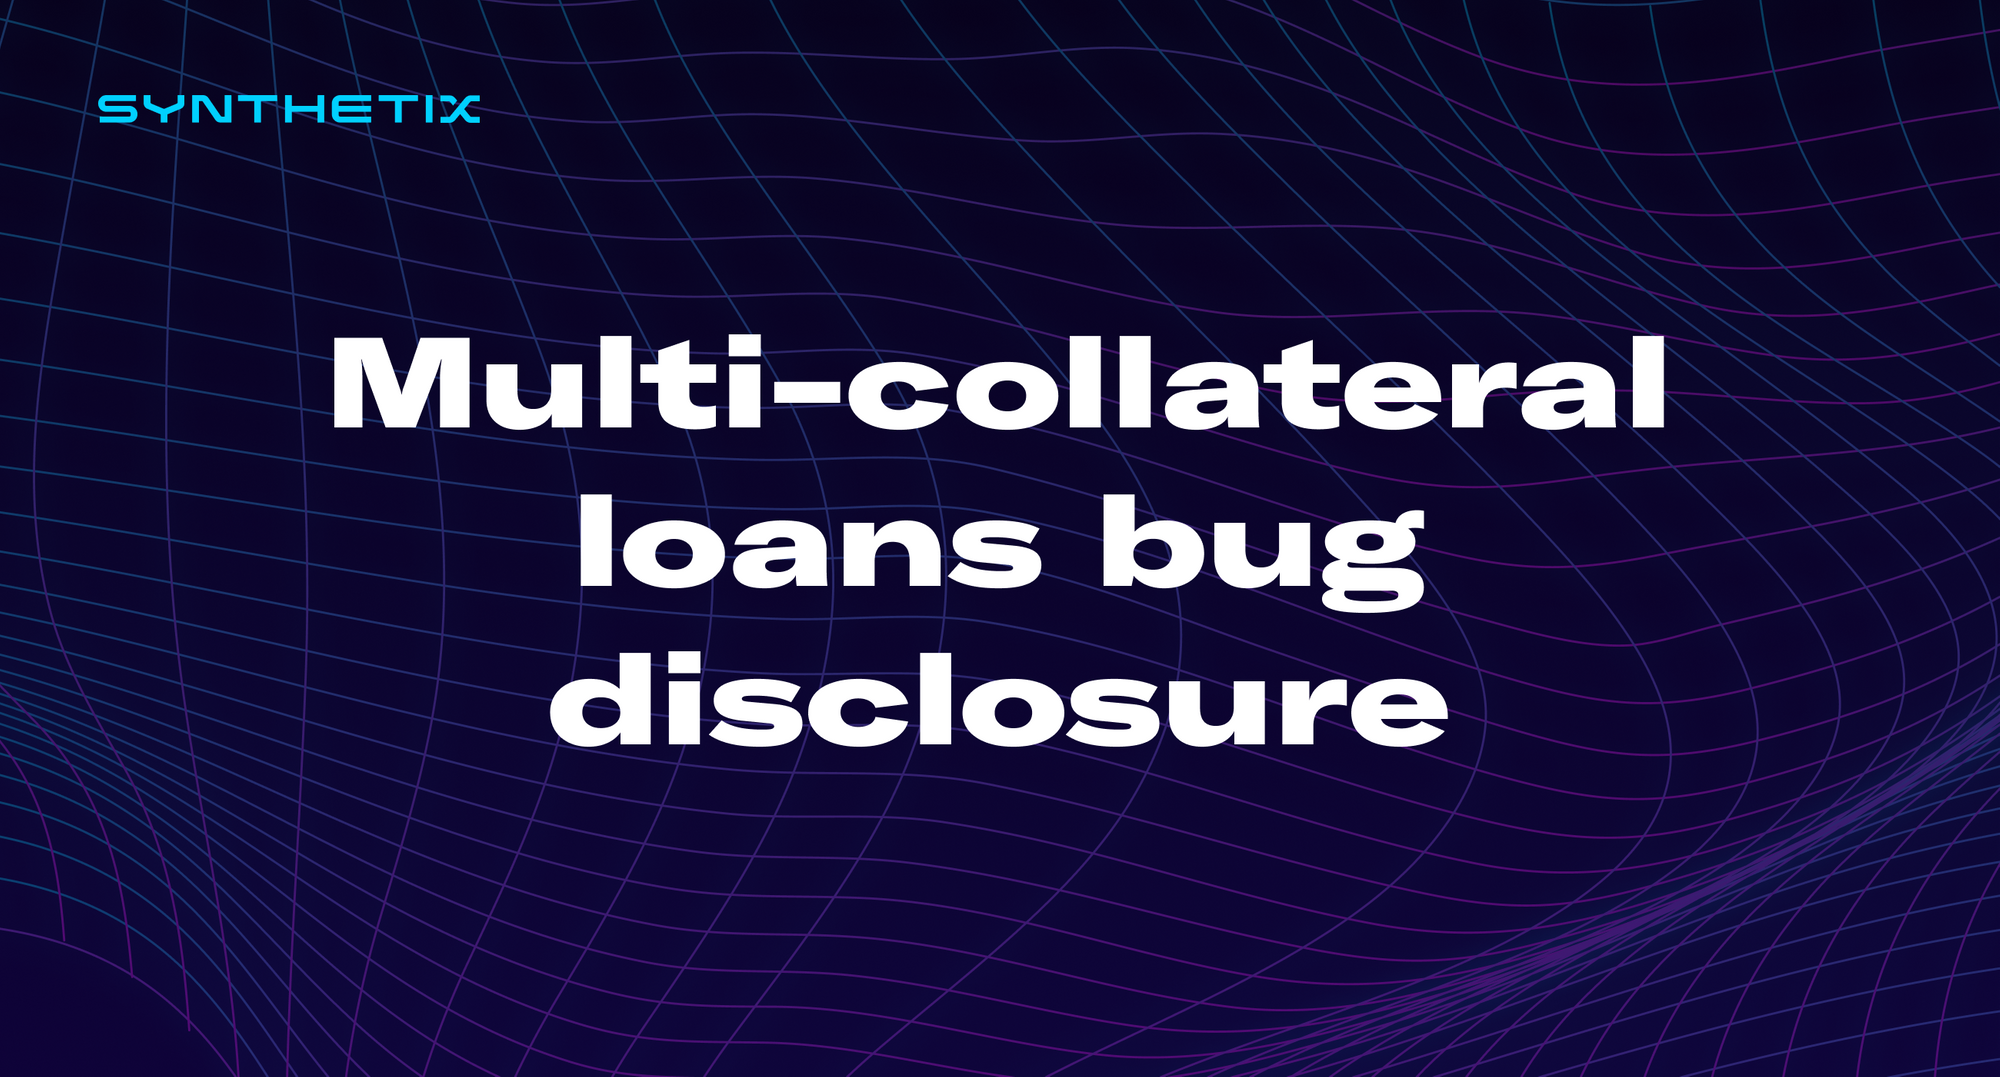 Multi-collateral loans bug disclosure